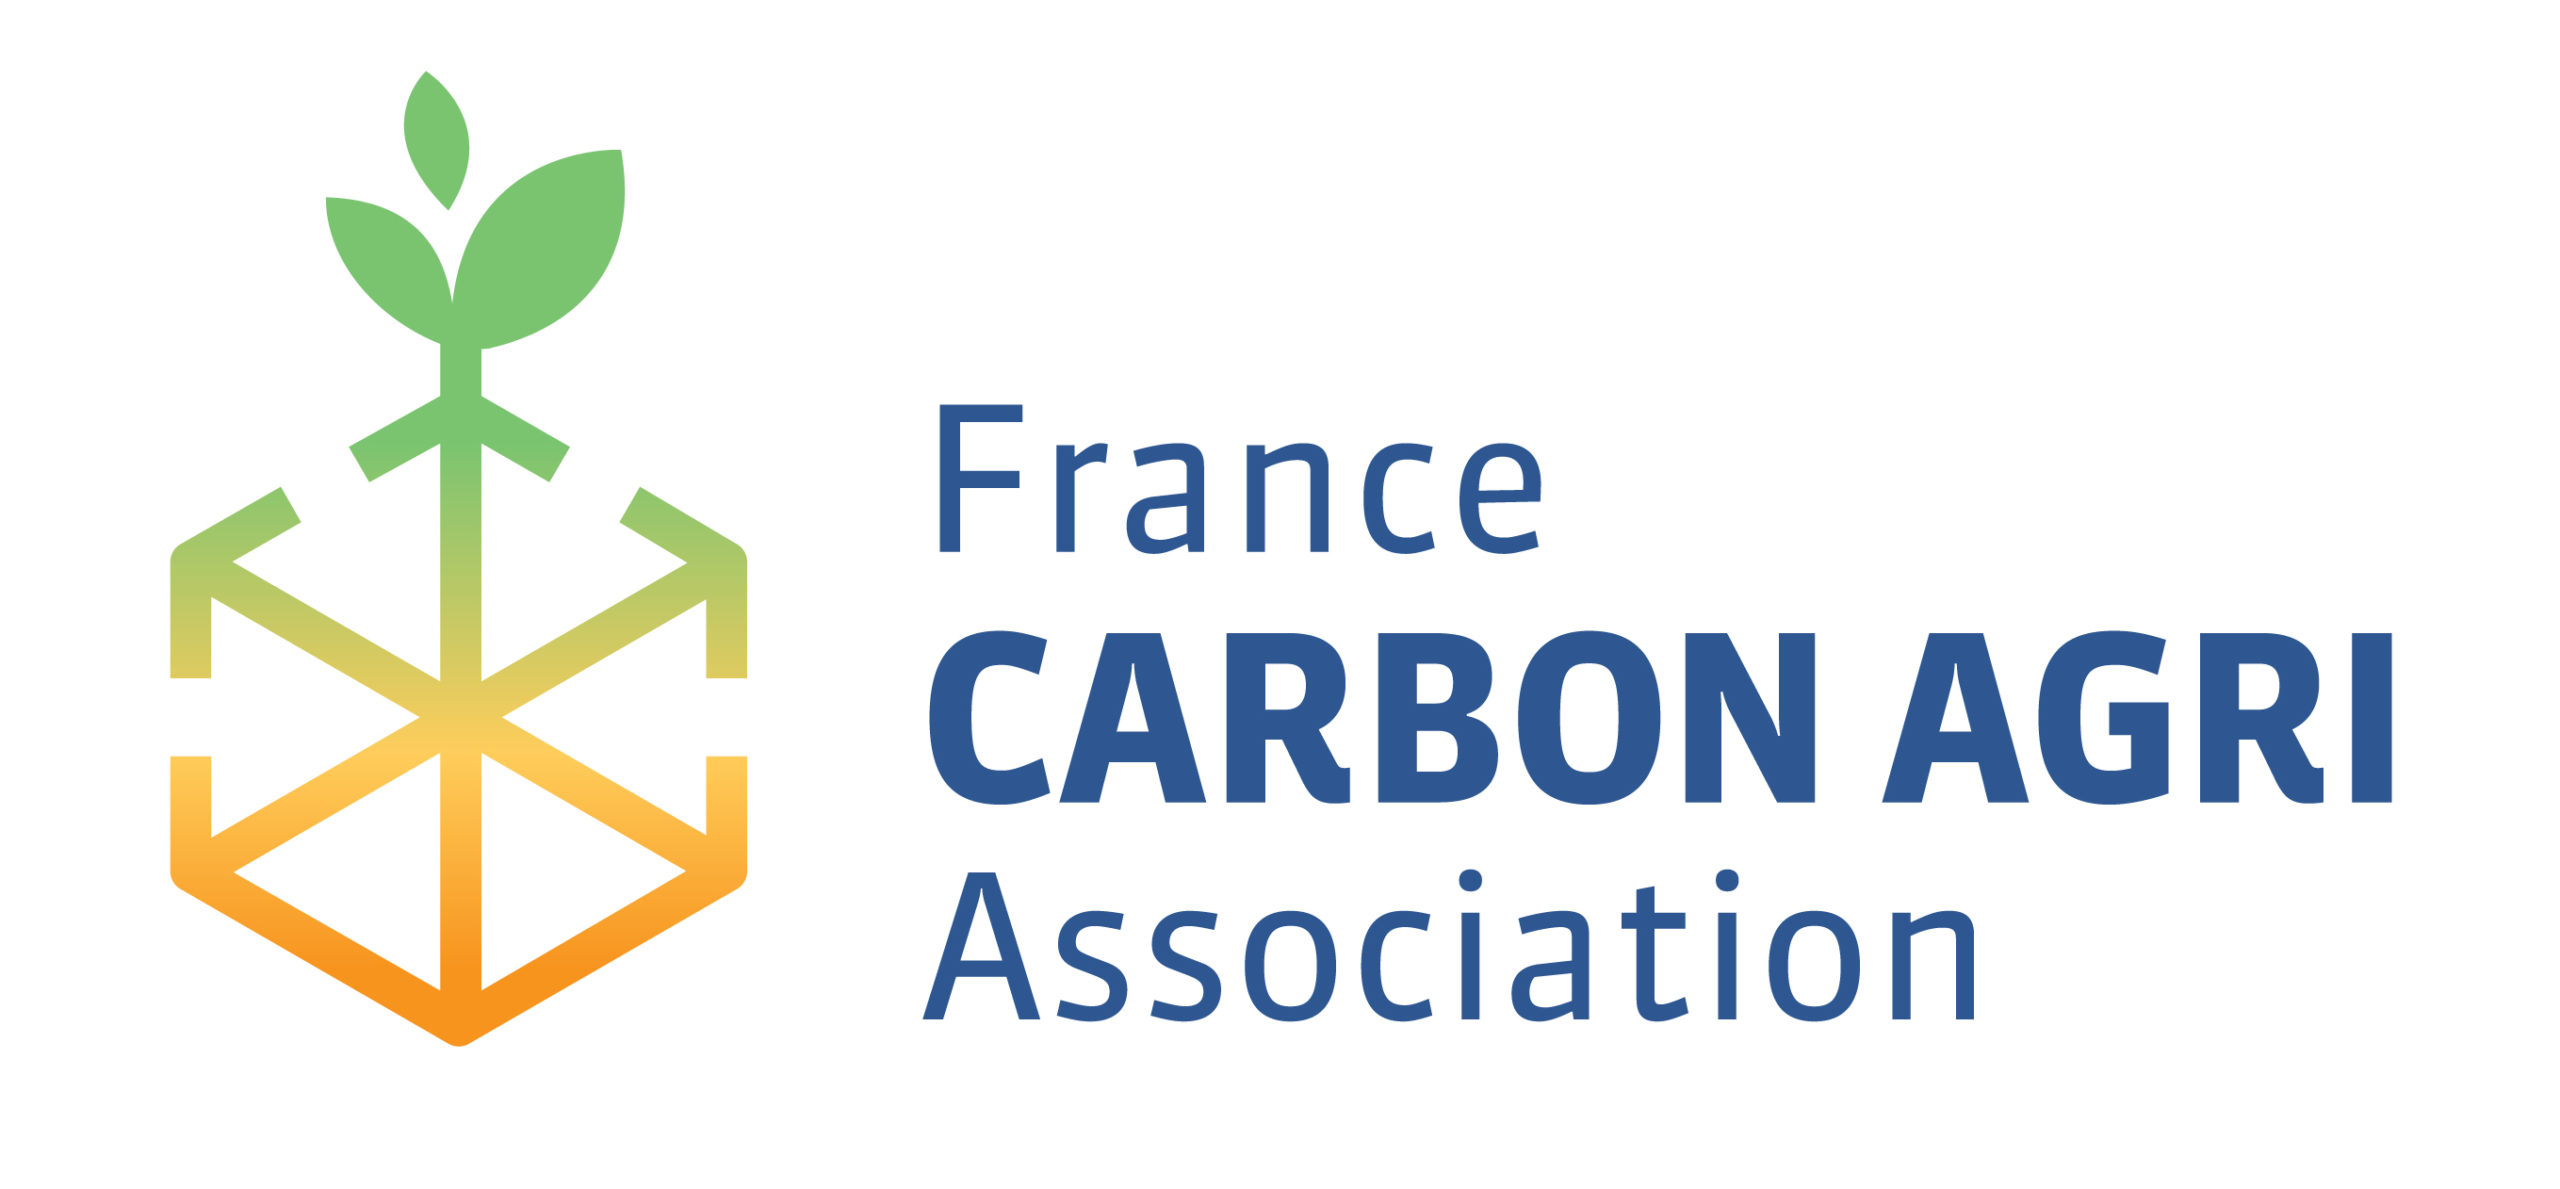 France Carbon Agri Association